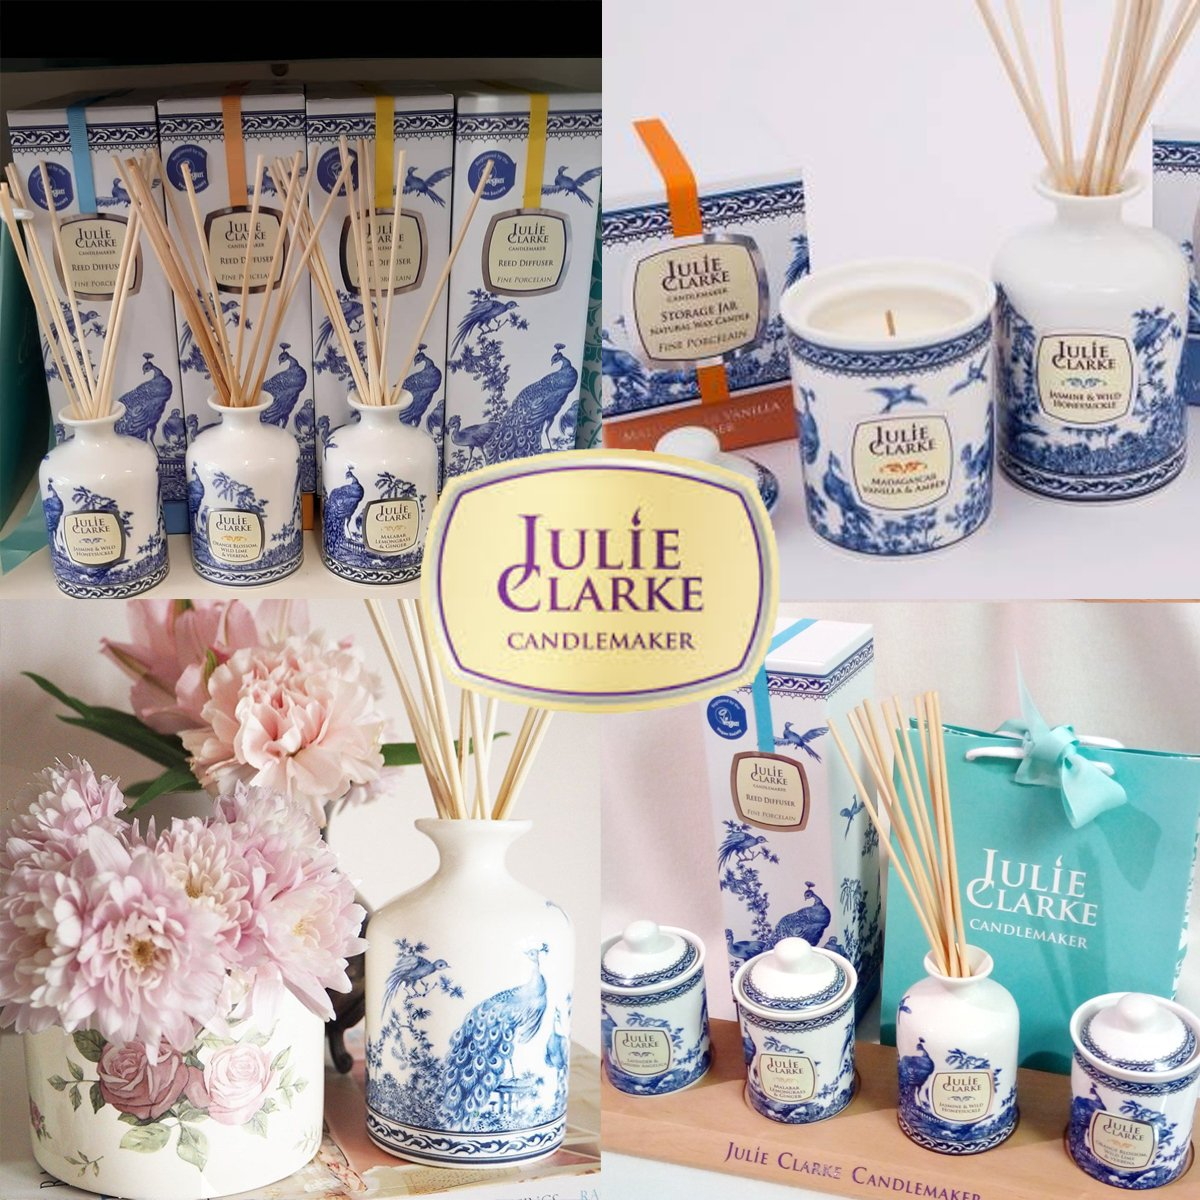 Julie Clarke Luxury Candles